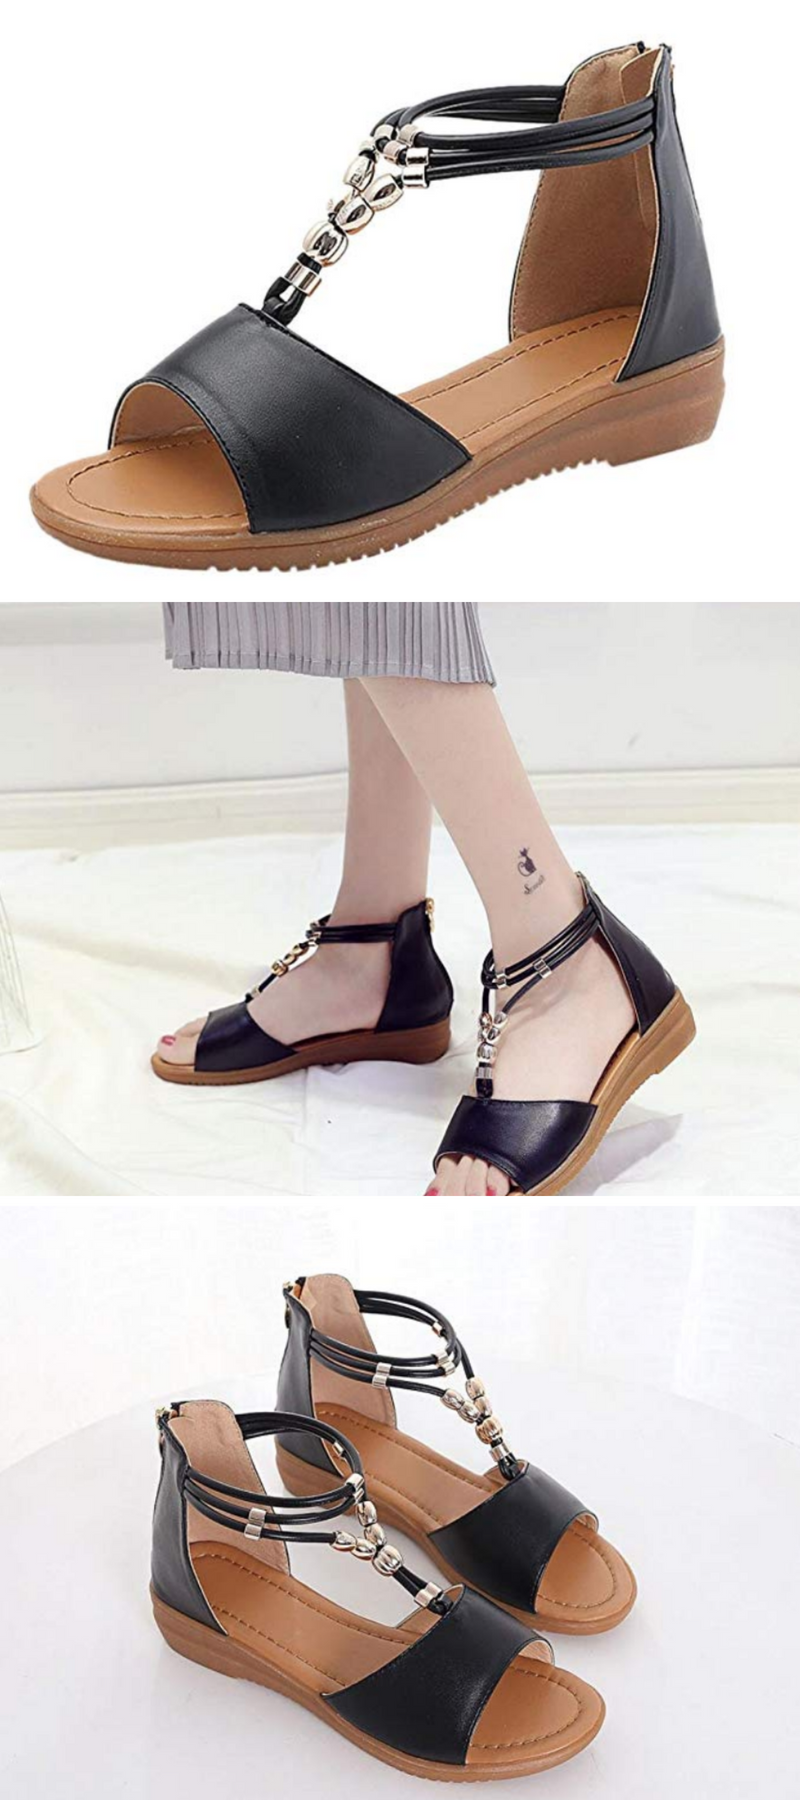 Women s Lady Wedge Sandles from Dener with comfort fit low heel platfom wide  width Arch Support are on Sale!  sandals  wedges  woman  fashion  foot ... 2deaa968d31